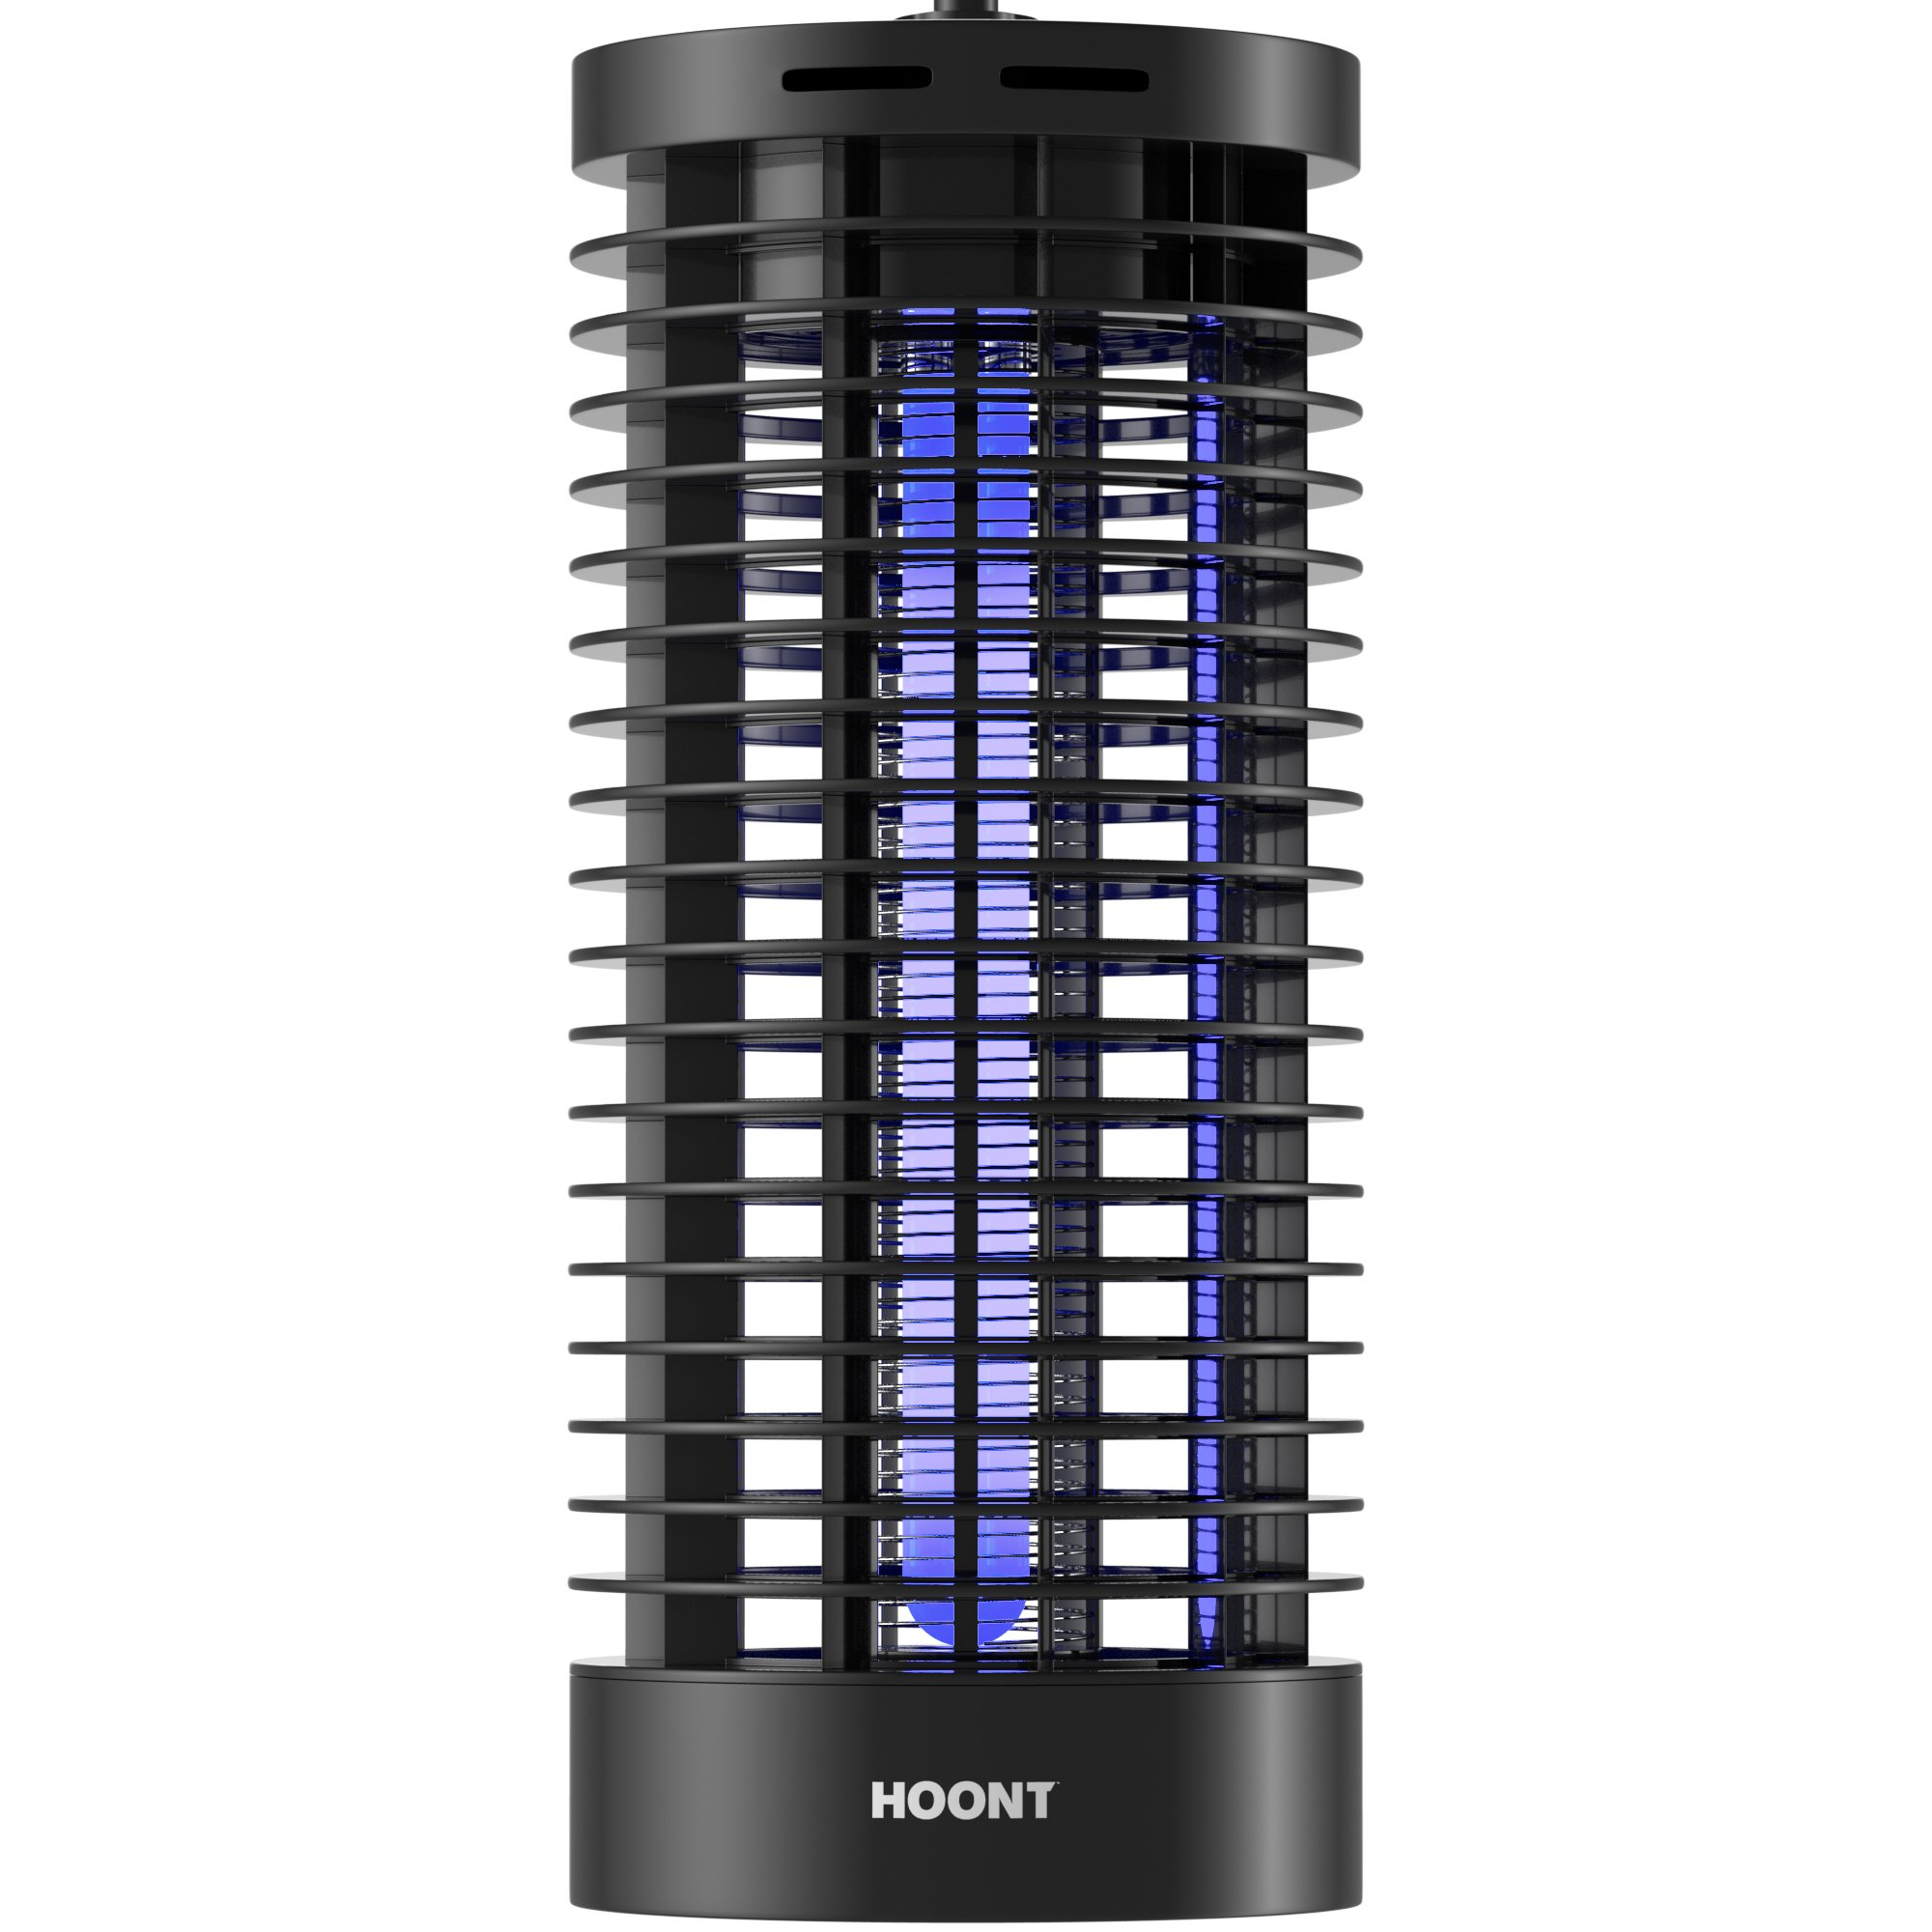 Hoont Portable Electric Indoor Outdoor Bug Zapper Trap Fly Zapper Catcher with UV – Powerful 2,000 Sq. Ft. Protection/Mosquito Killer, Fly Killer, Insect Killer – For Travel, Home, etc. [UPGRADED]